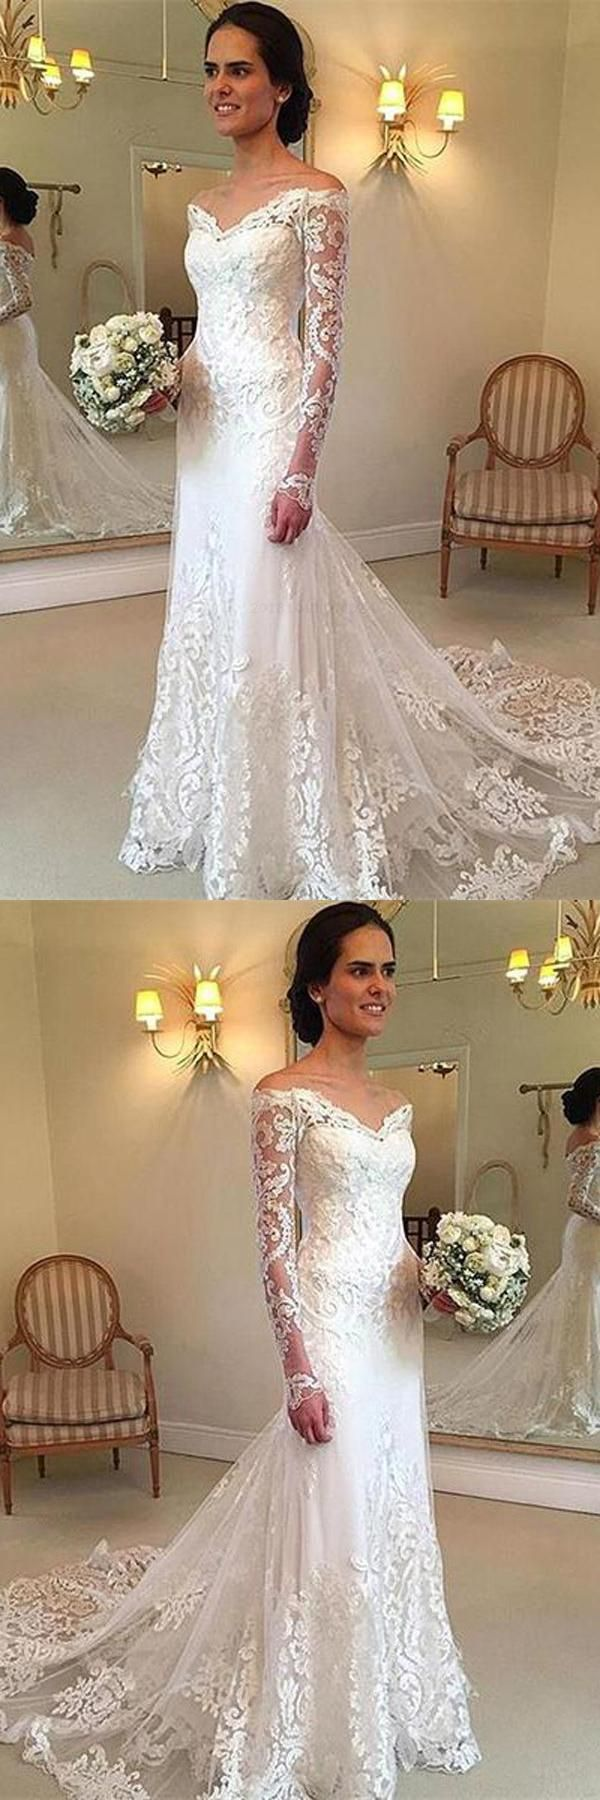 Outlet Great Wedding Dresses With Sleeves, V-Neck Wedding Dresses, Wedding Dresses Lace